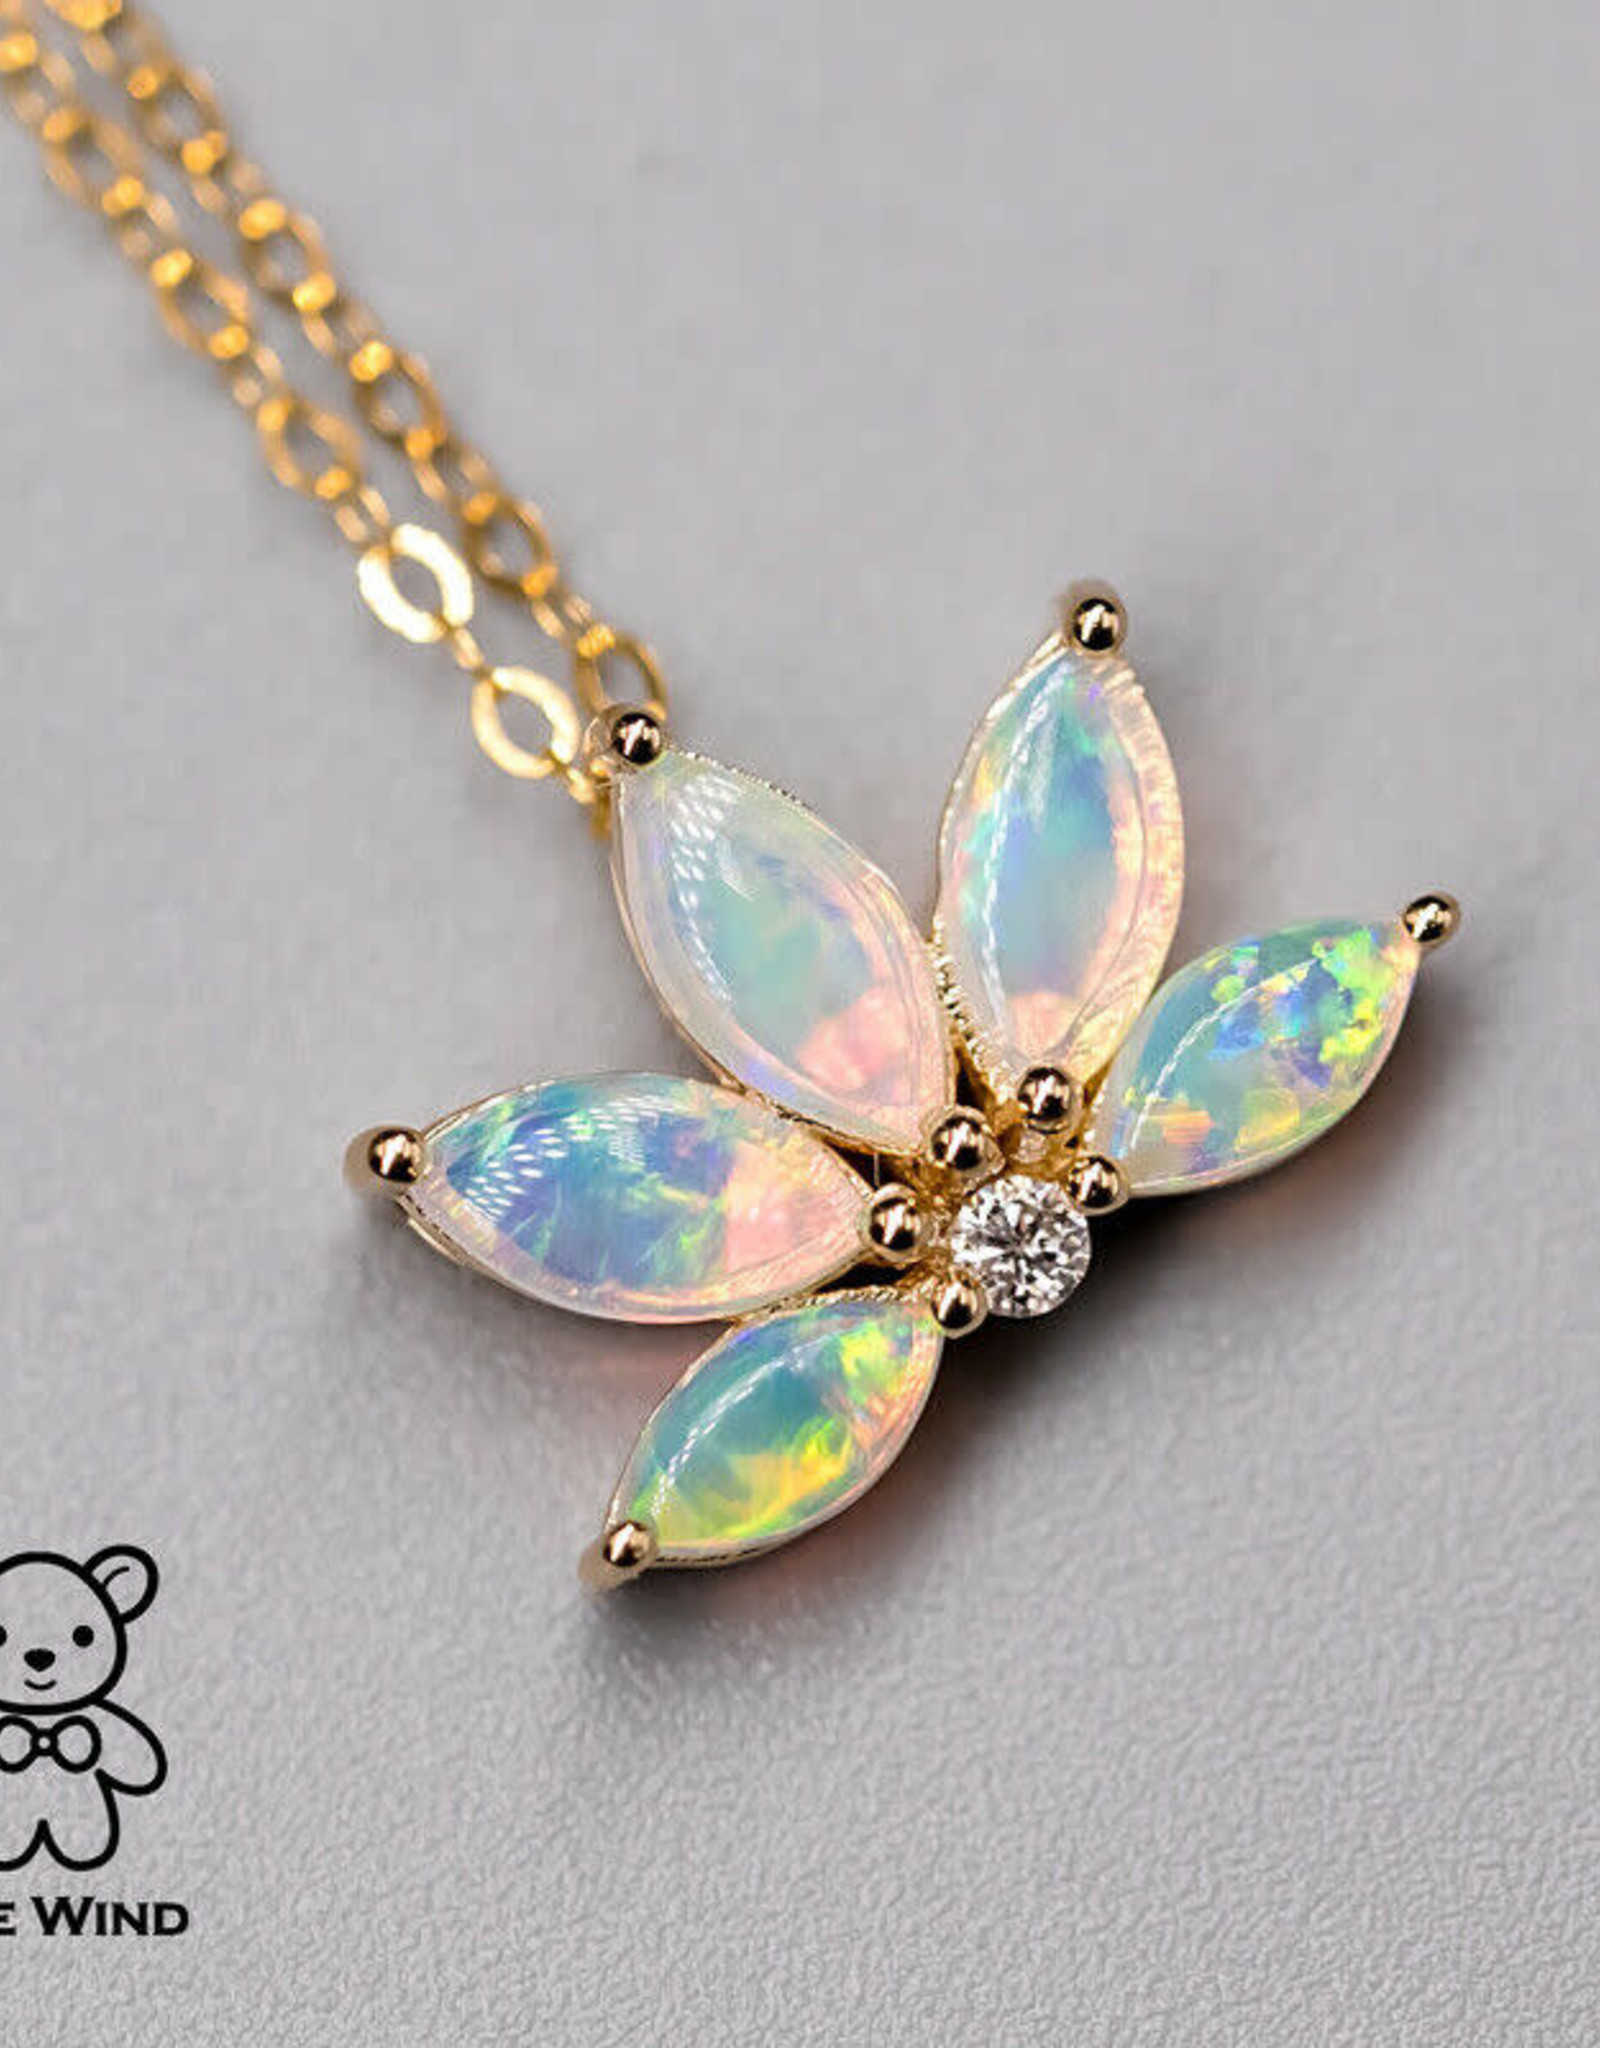 The Wind Opal Australian Lotus Opal Diamond Pendant 14K Yellow Gold